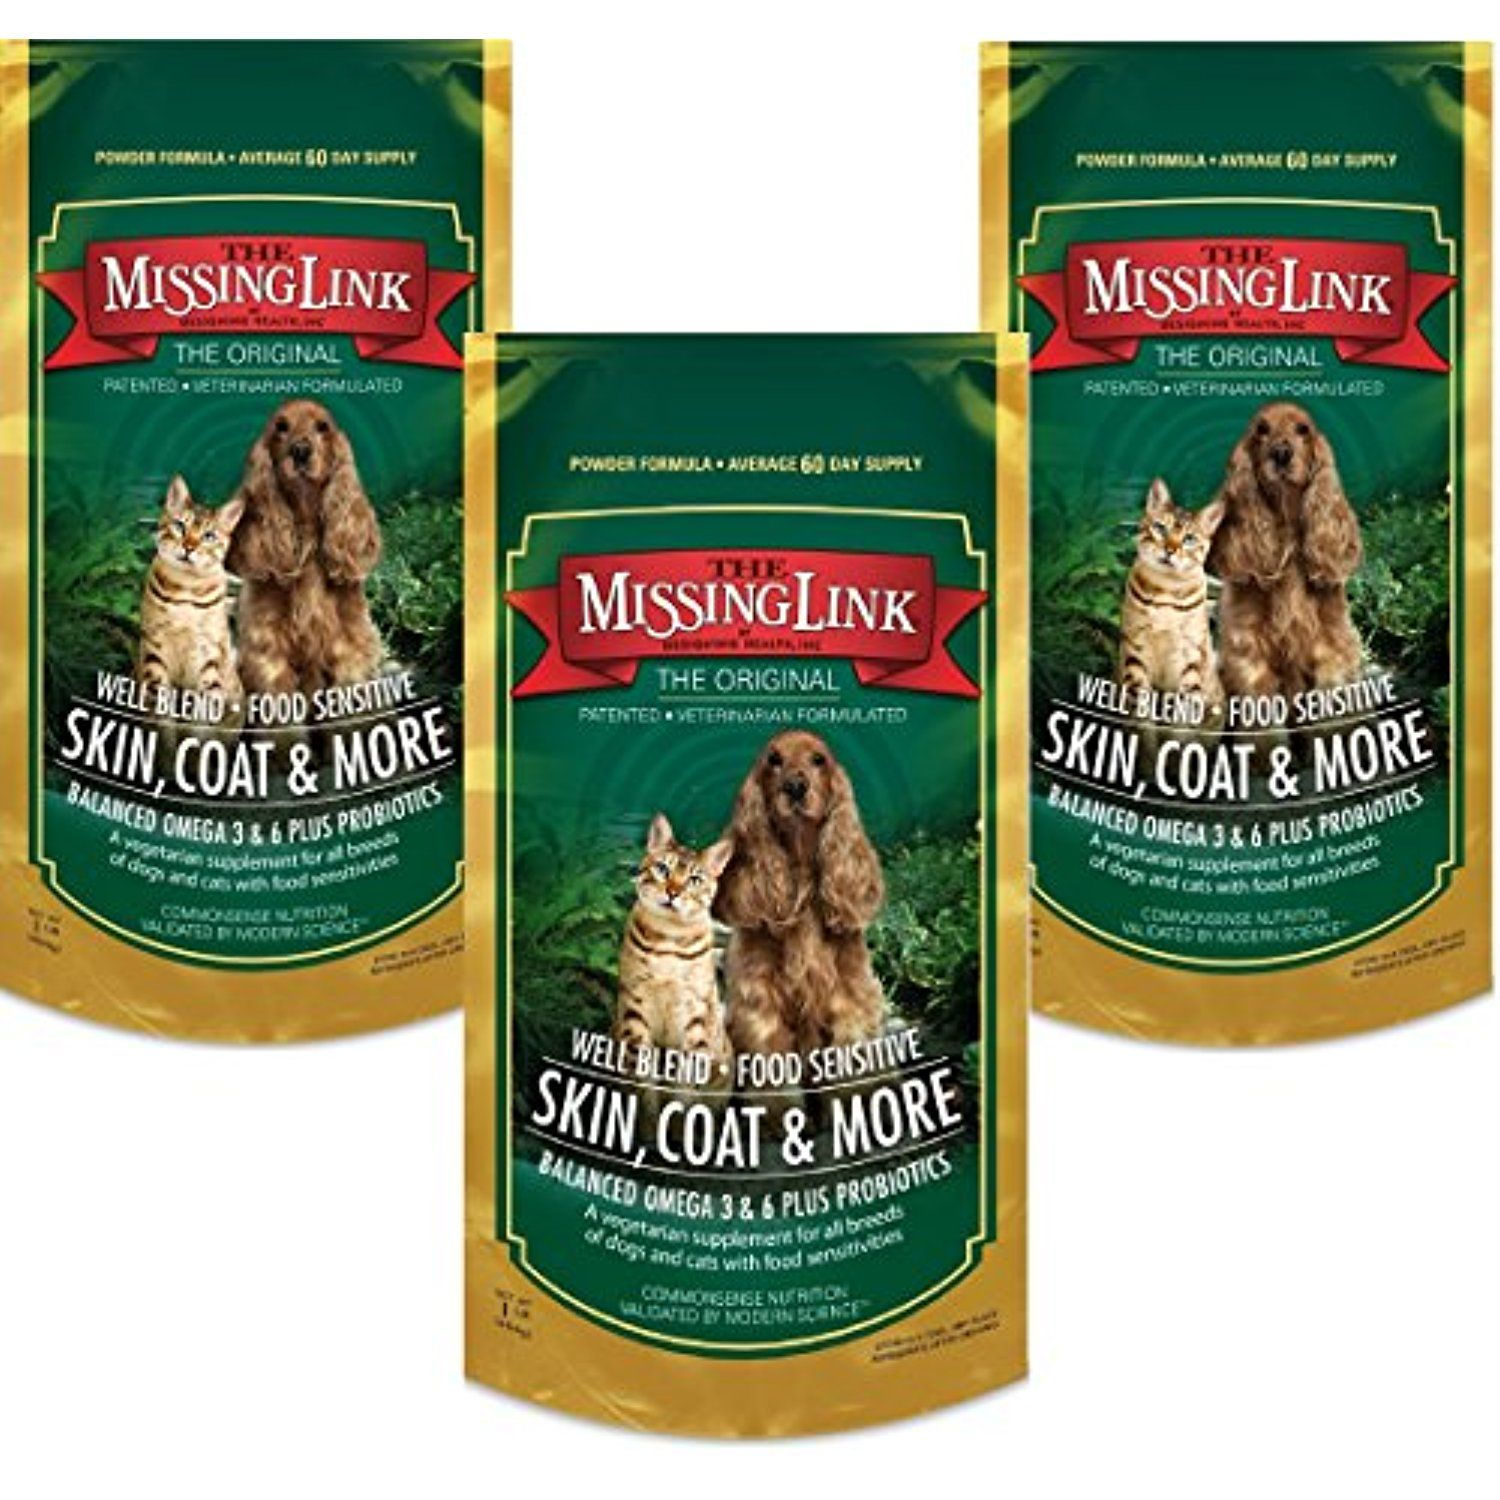 3 Pack Missing Link Well Blend Nutritional Supplement For Dogs And Cats 1lb Each To Check This Animal Nutrition Dog Supplements Nutritional Supplements